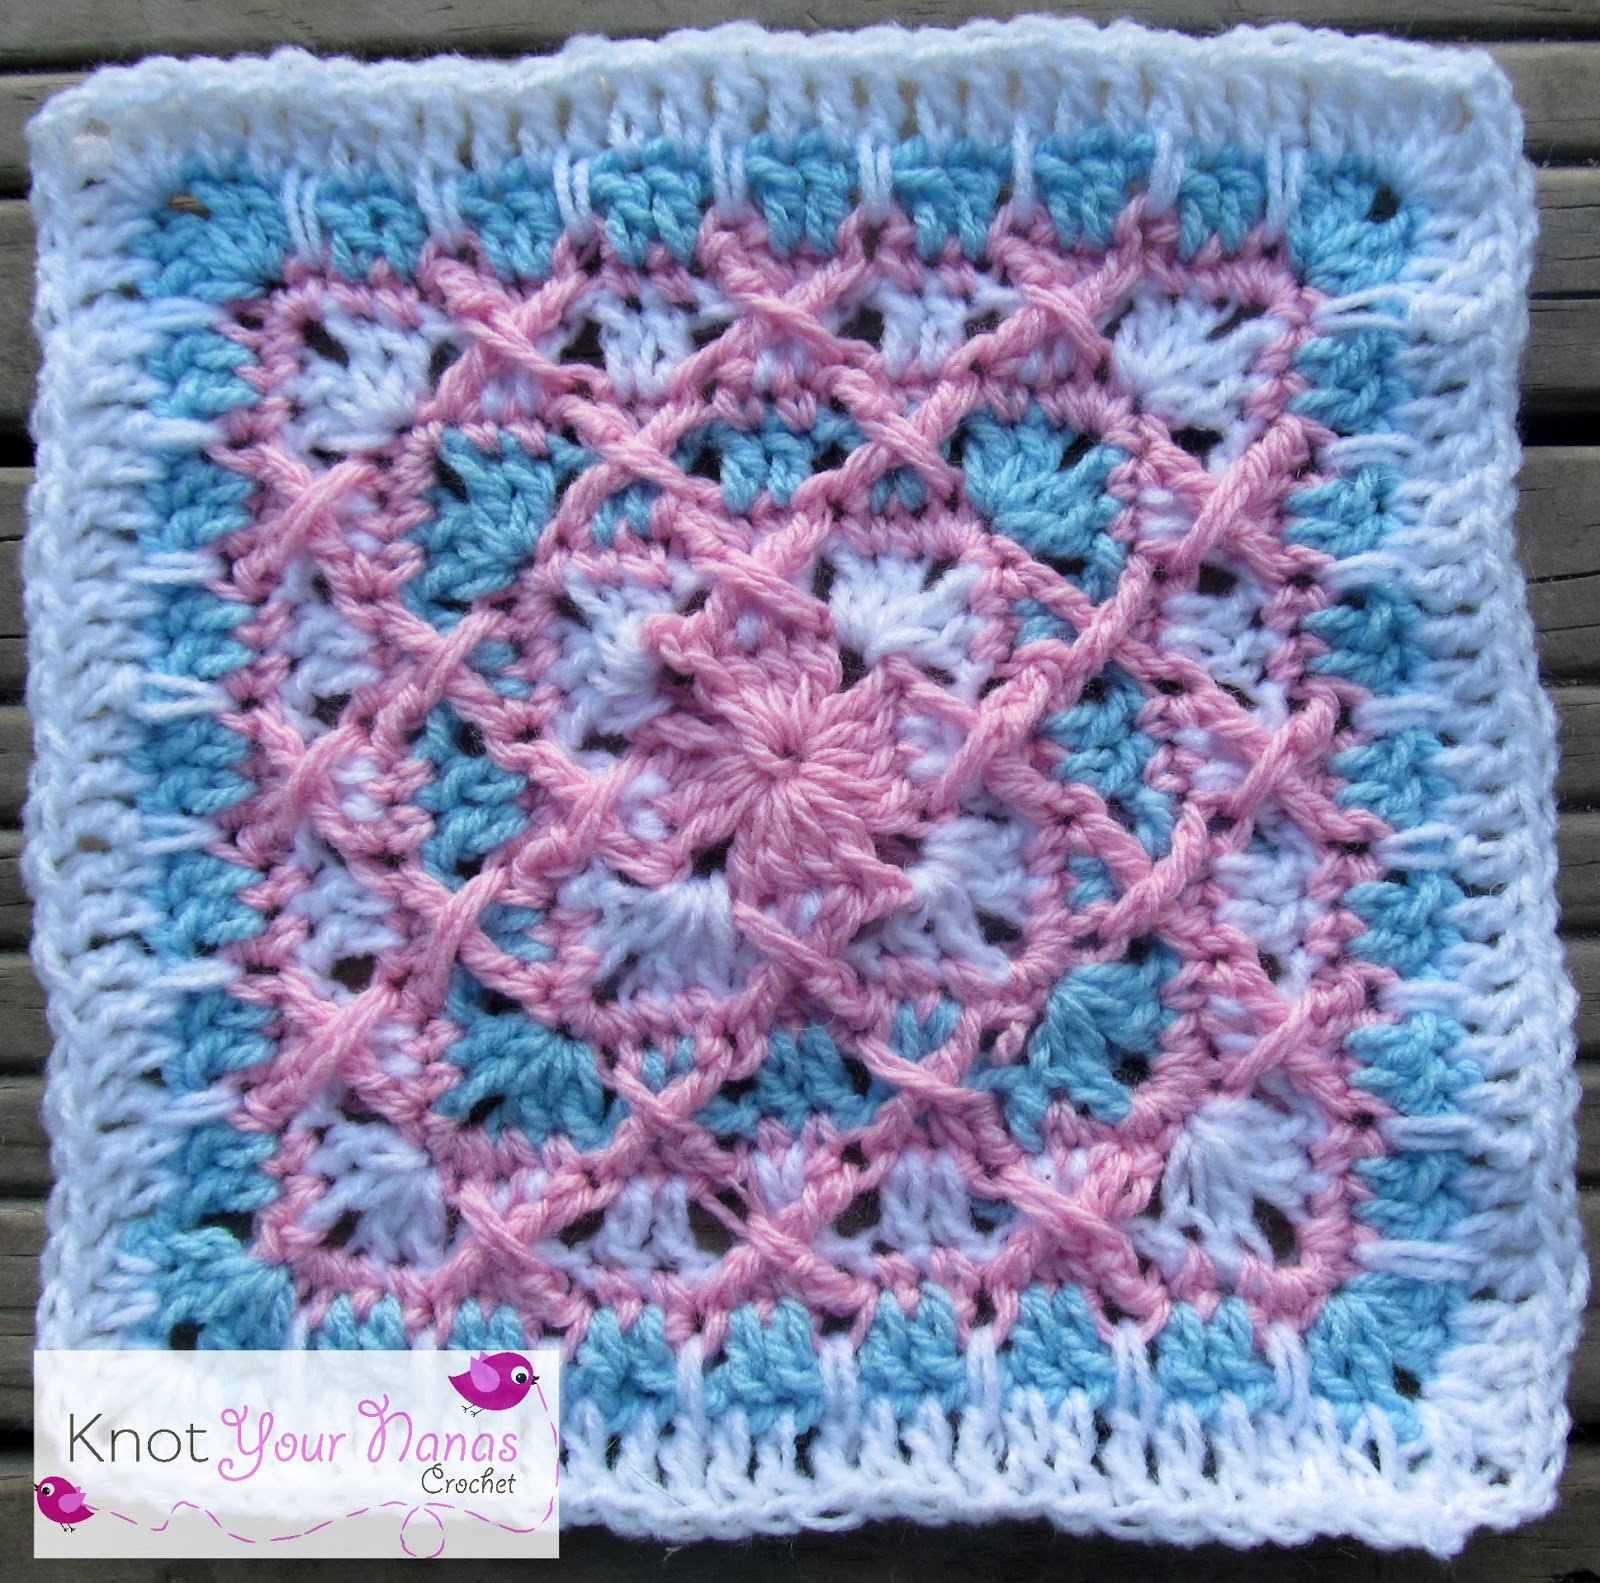 Crochet Kiss Stitch : Knot Your Nanas Crochet: Granny Square CAL (Week 16)